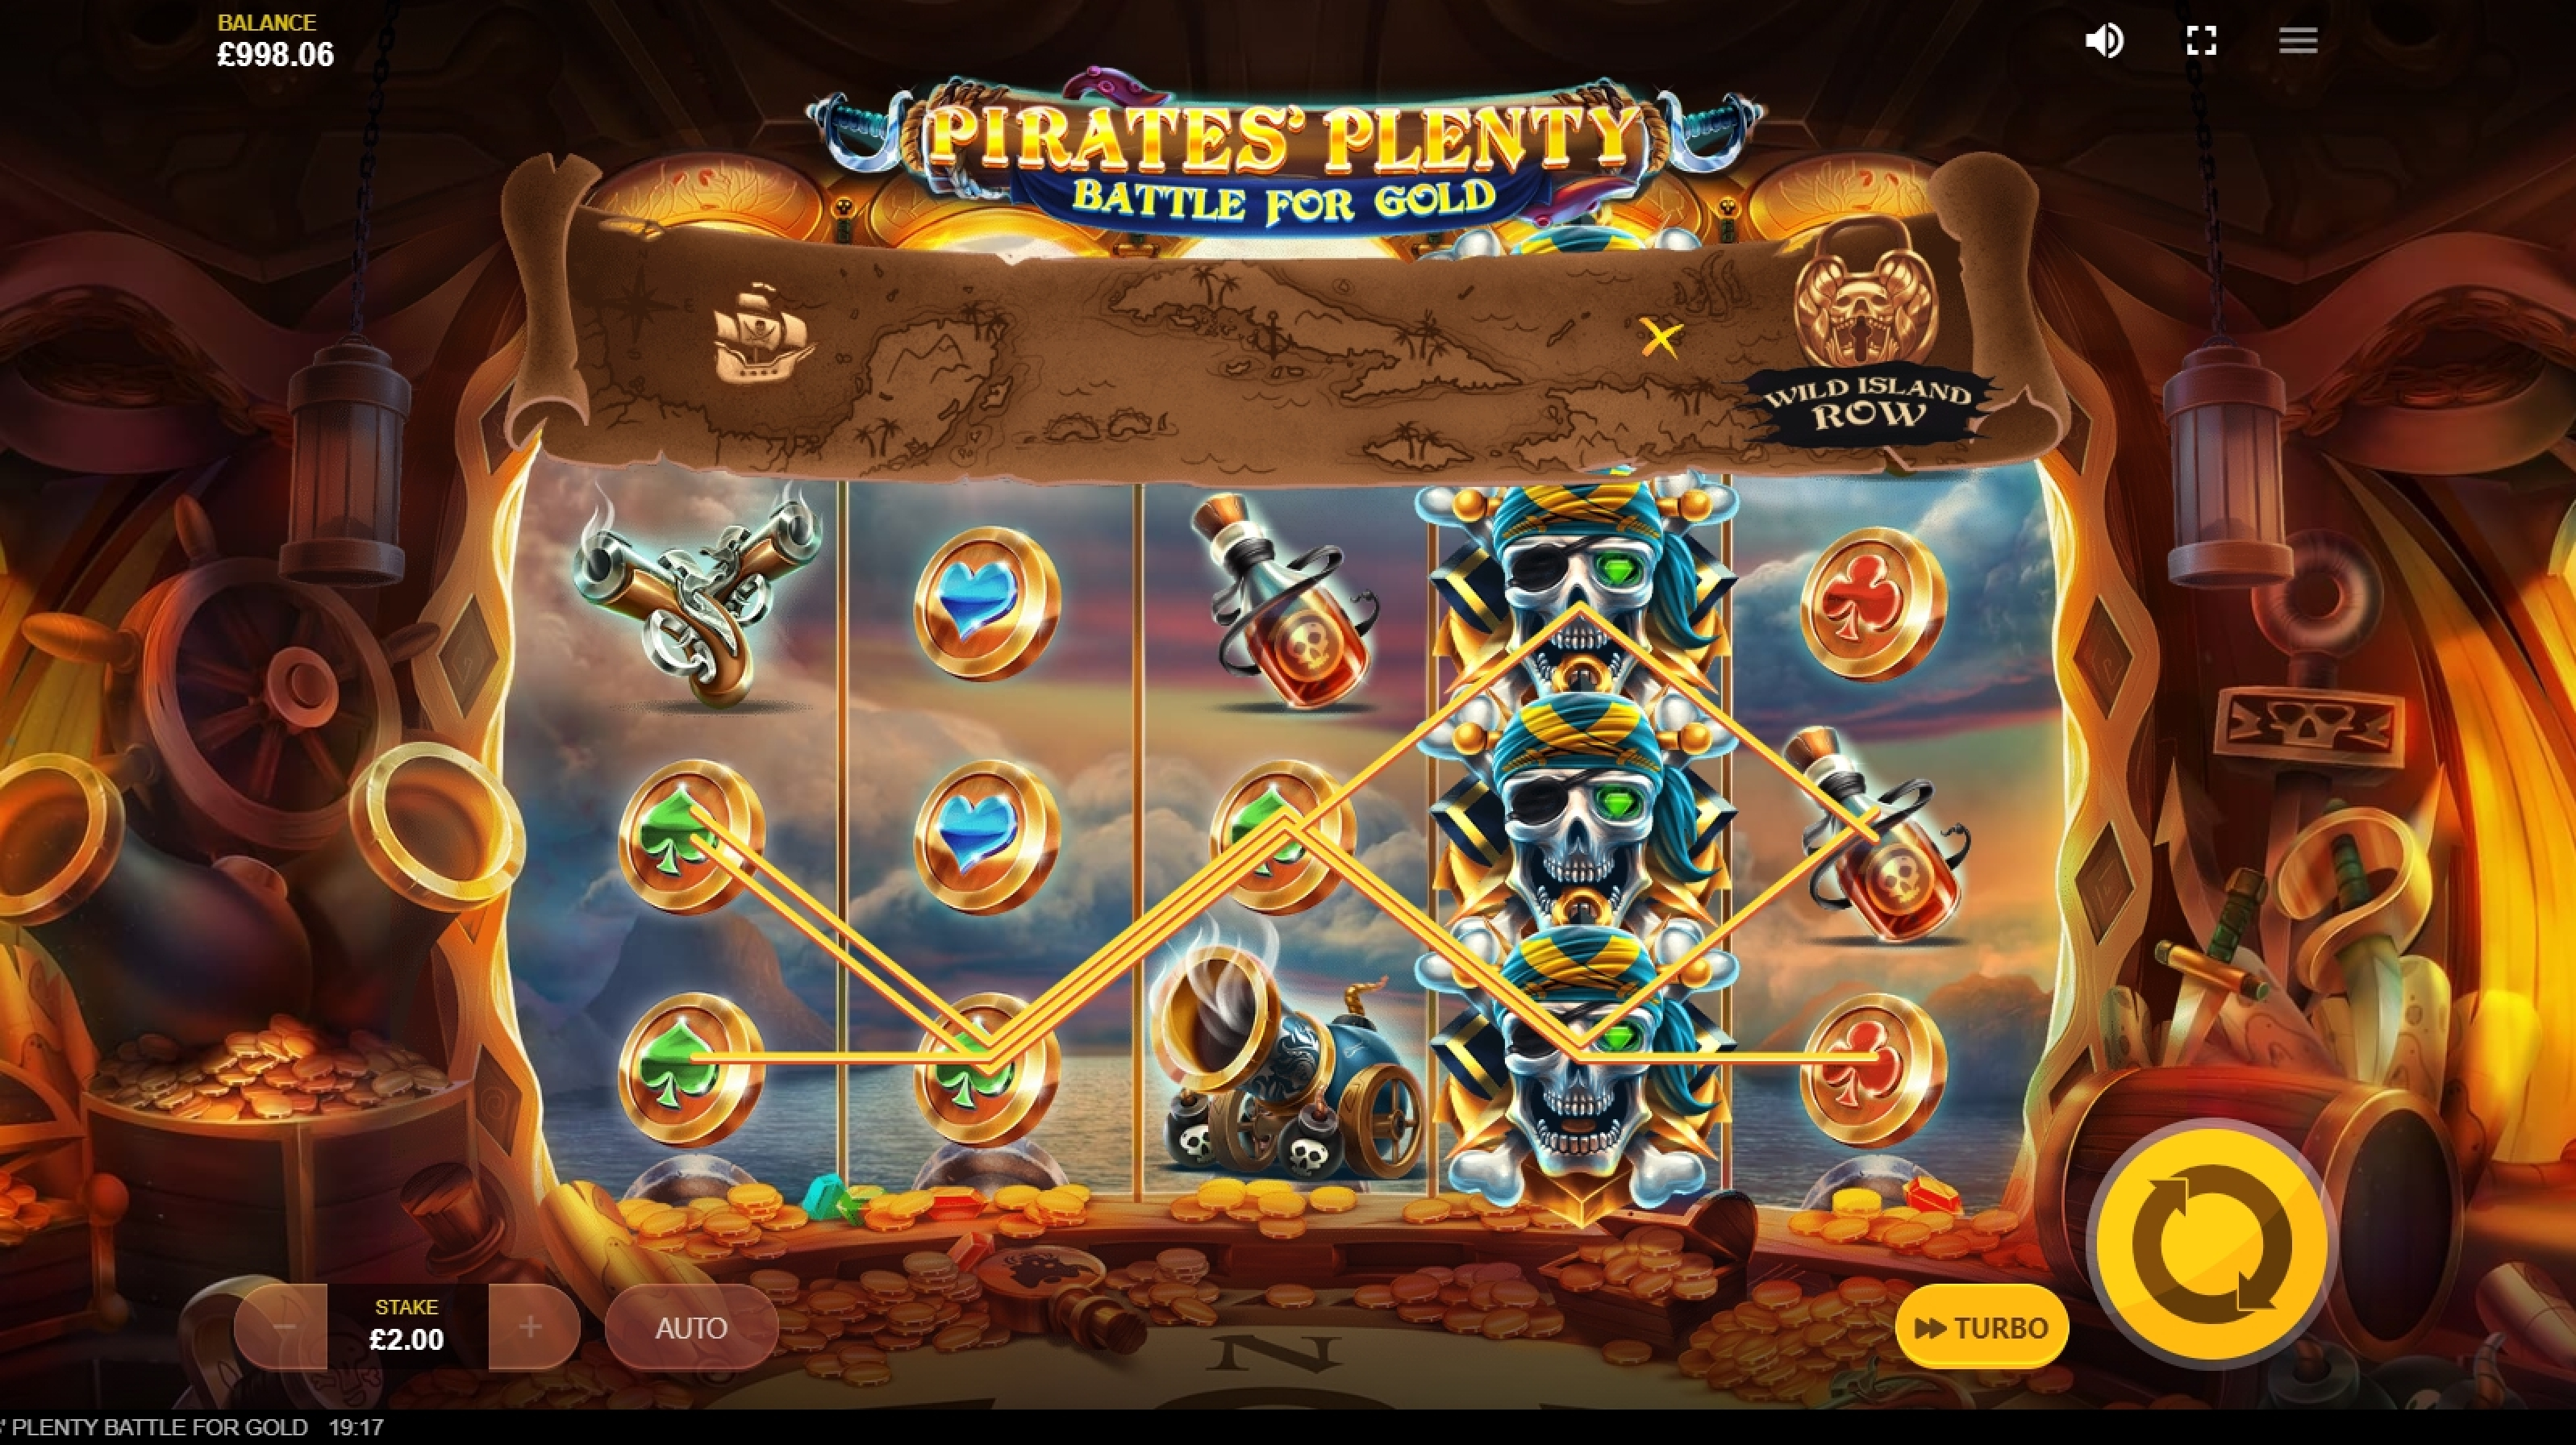 Win Money in Pirates Plenty Battle for Gold Free Slot Game by Red Tiger Gaming